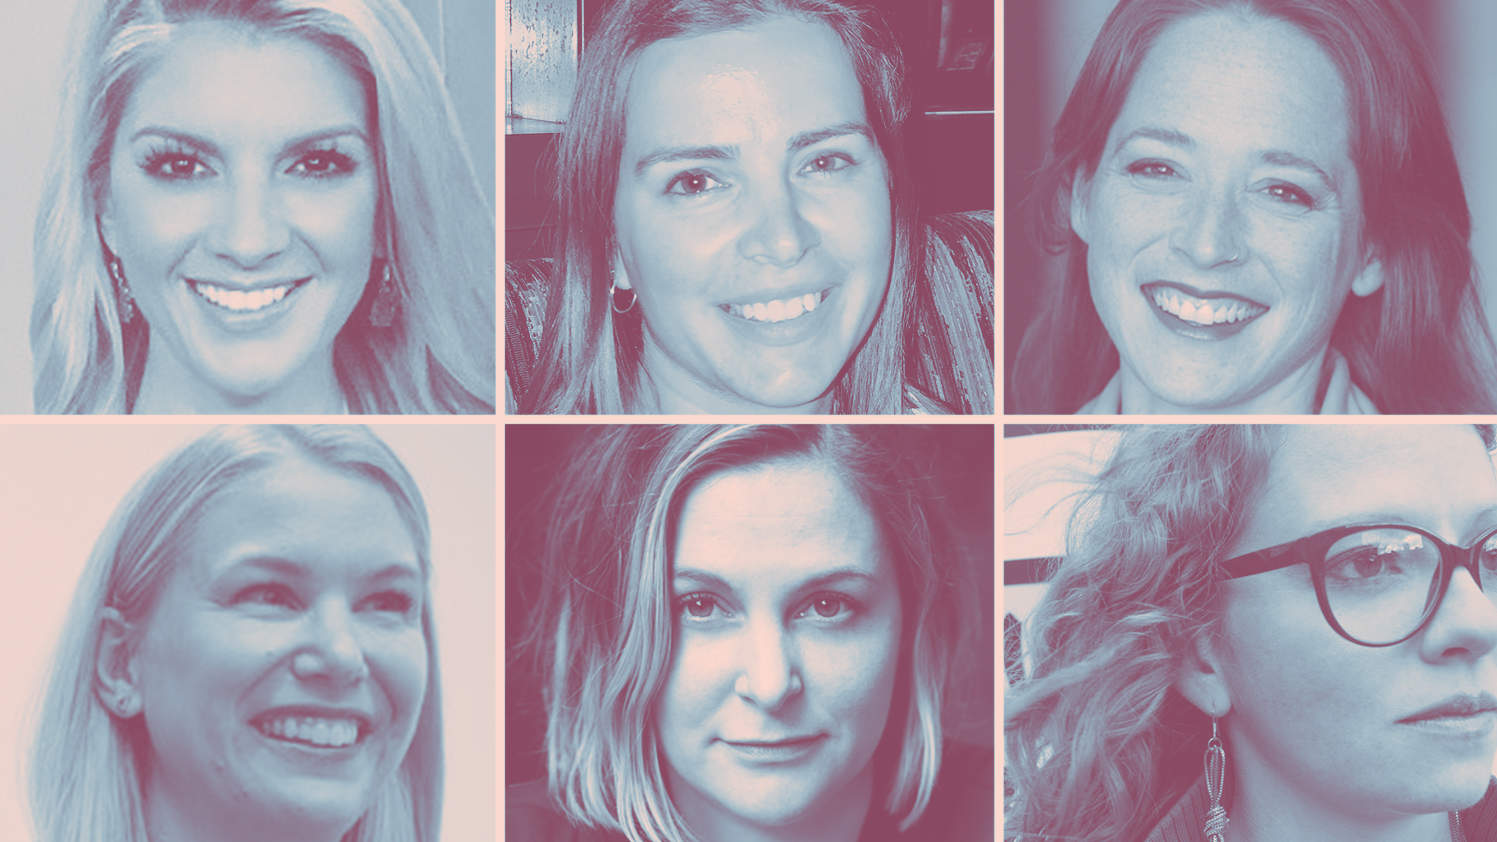 6 Women Share How #MeToo Changed Their Lives a Year After Harvey Weinstein: 'I've Gone From Victim to Survivor'